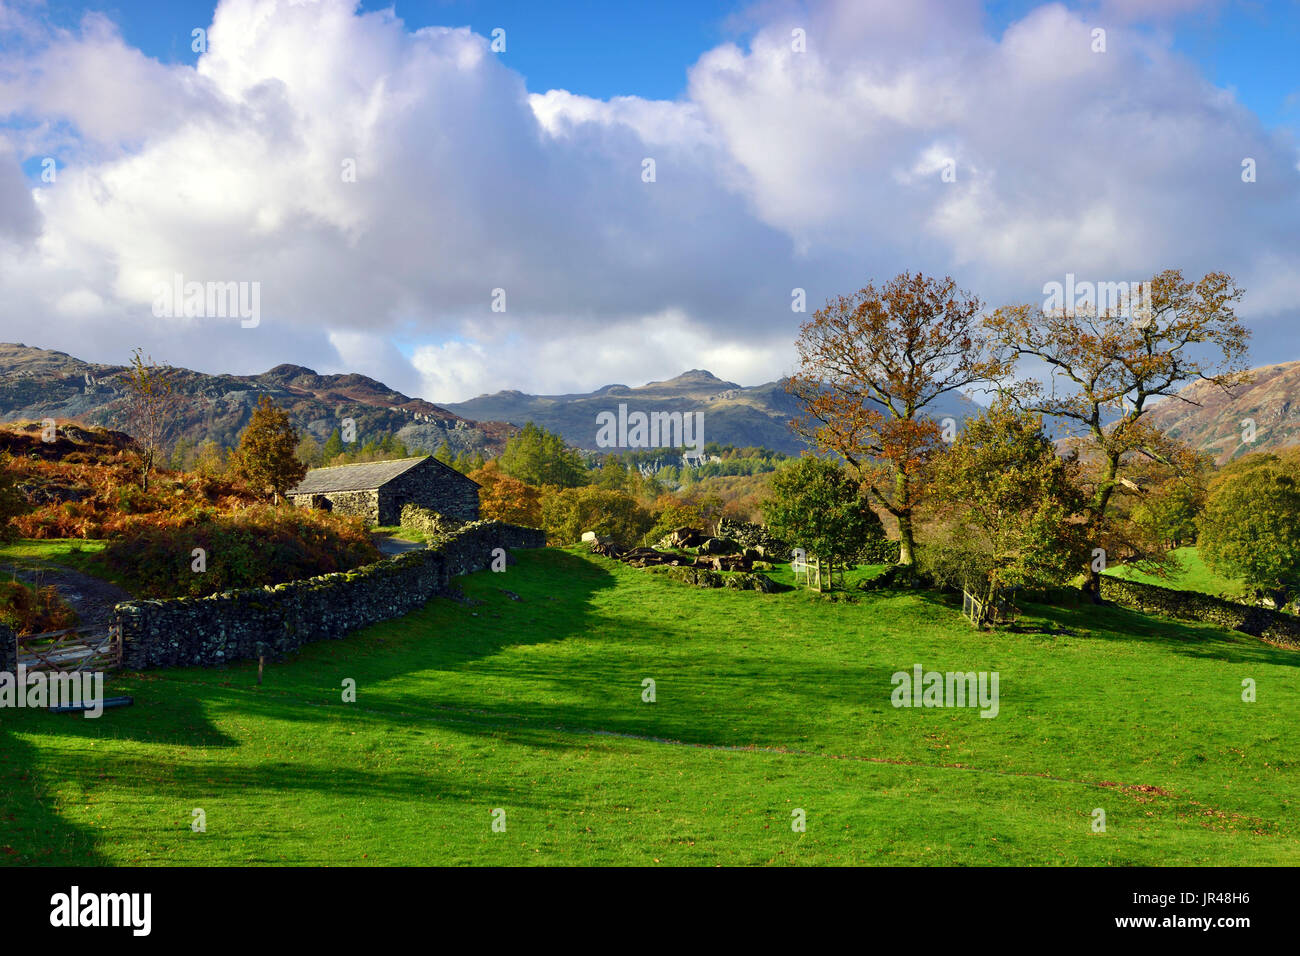 An autumn view of the Cumbrian Fells near Ambleside, England - Stock Image